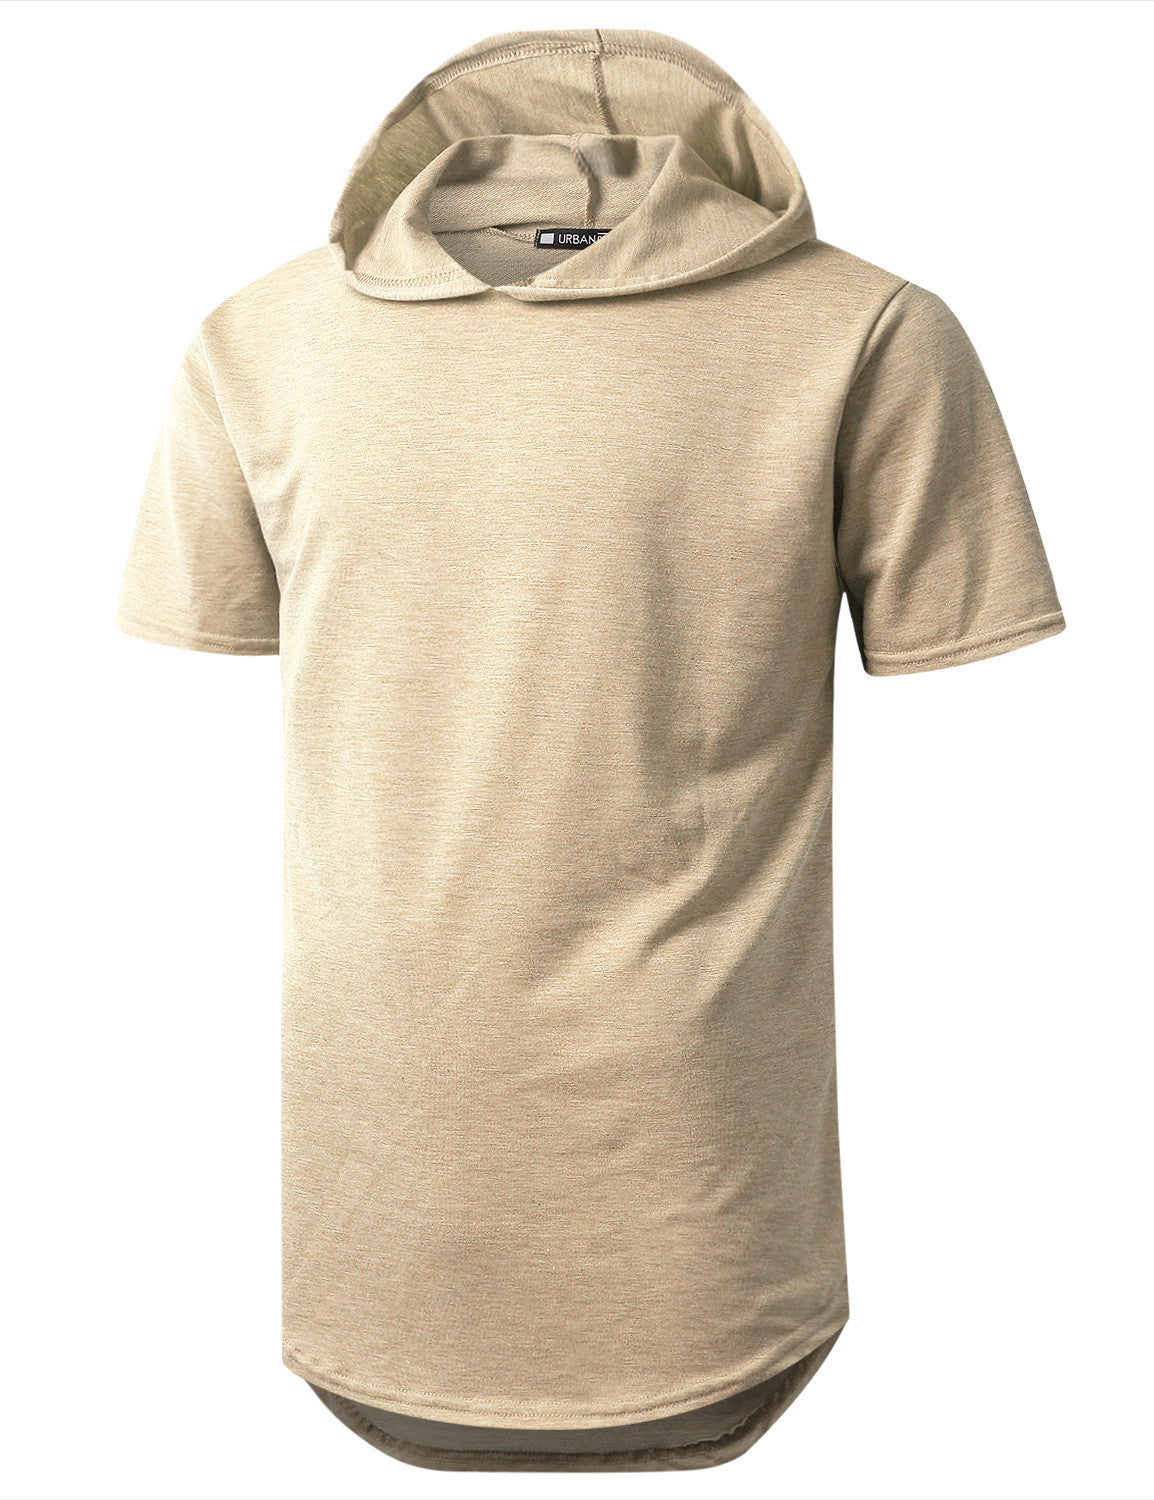 TAUPE Heavy French Terry Hoodie T-shirt - URBANCREWS